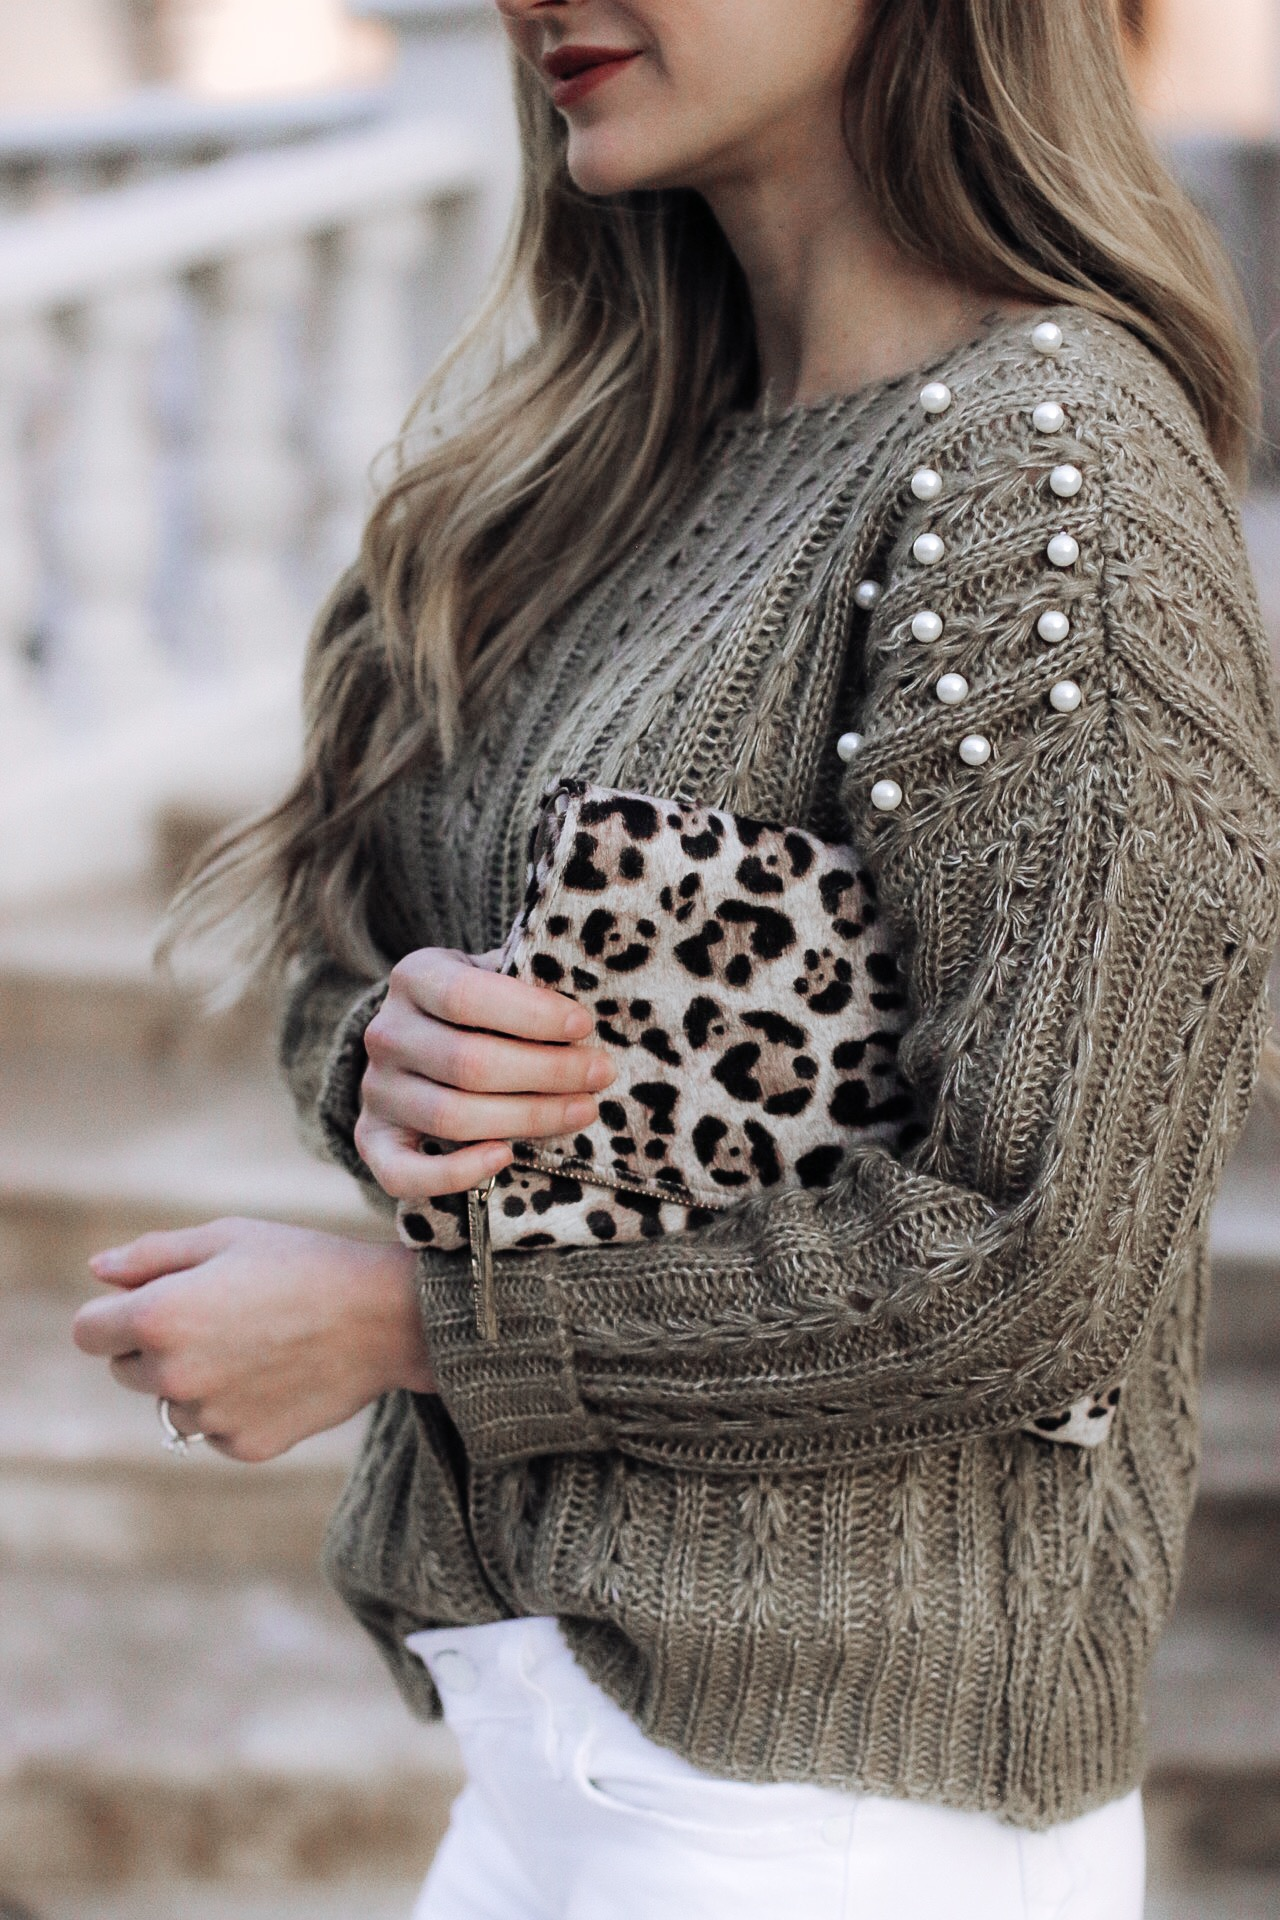 Sharing my love for a pearl embellished knit sweater and leopard handbag